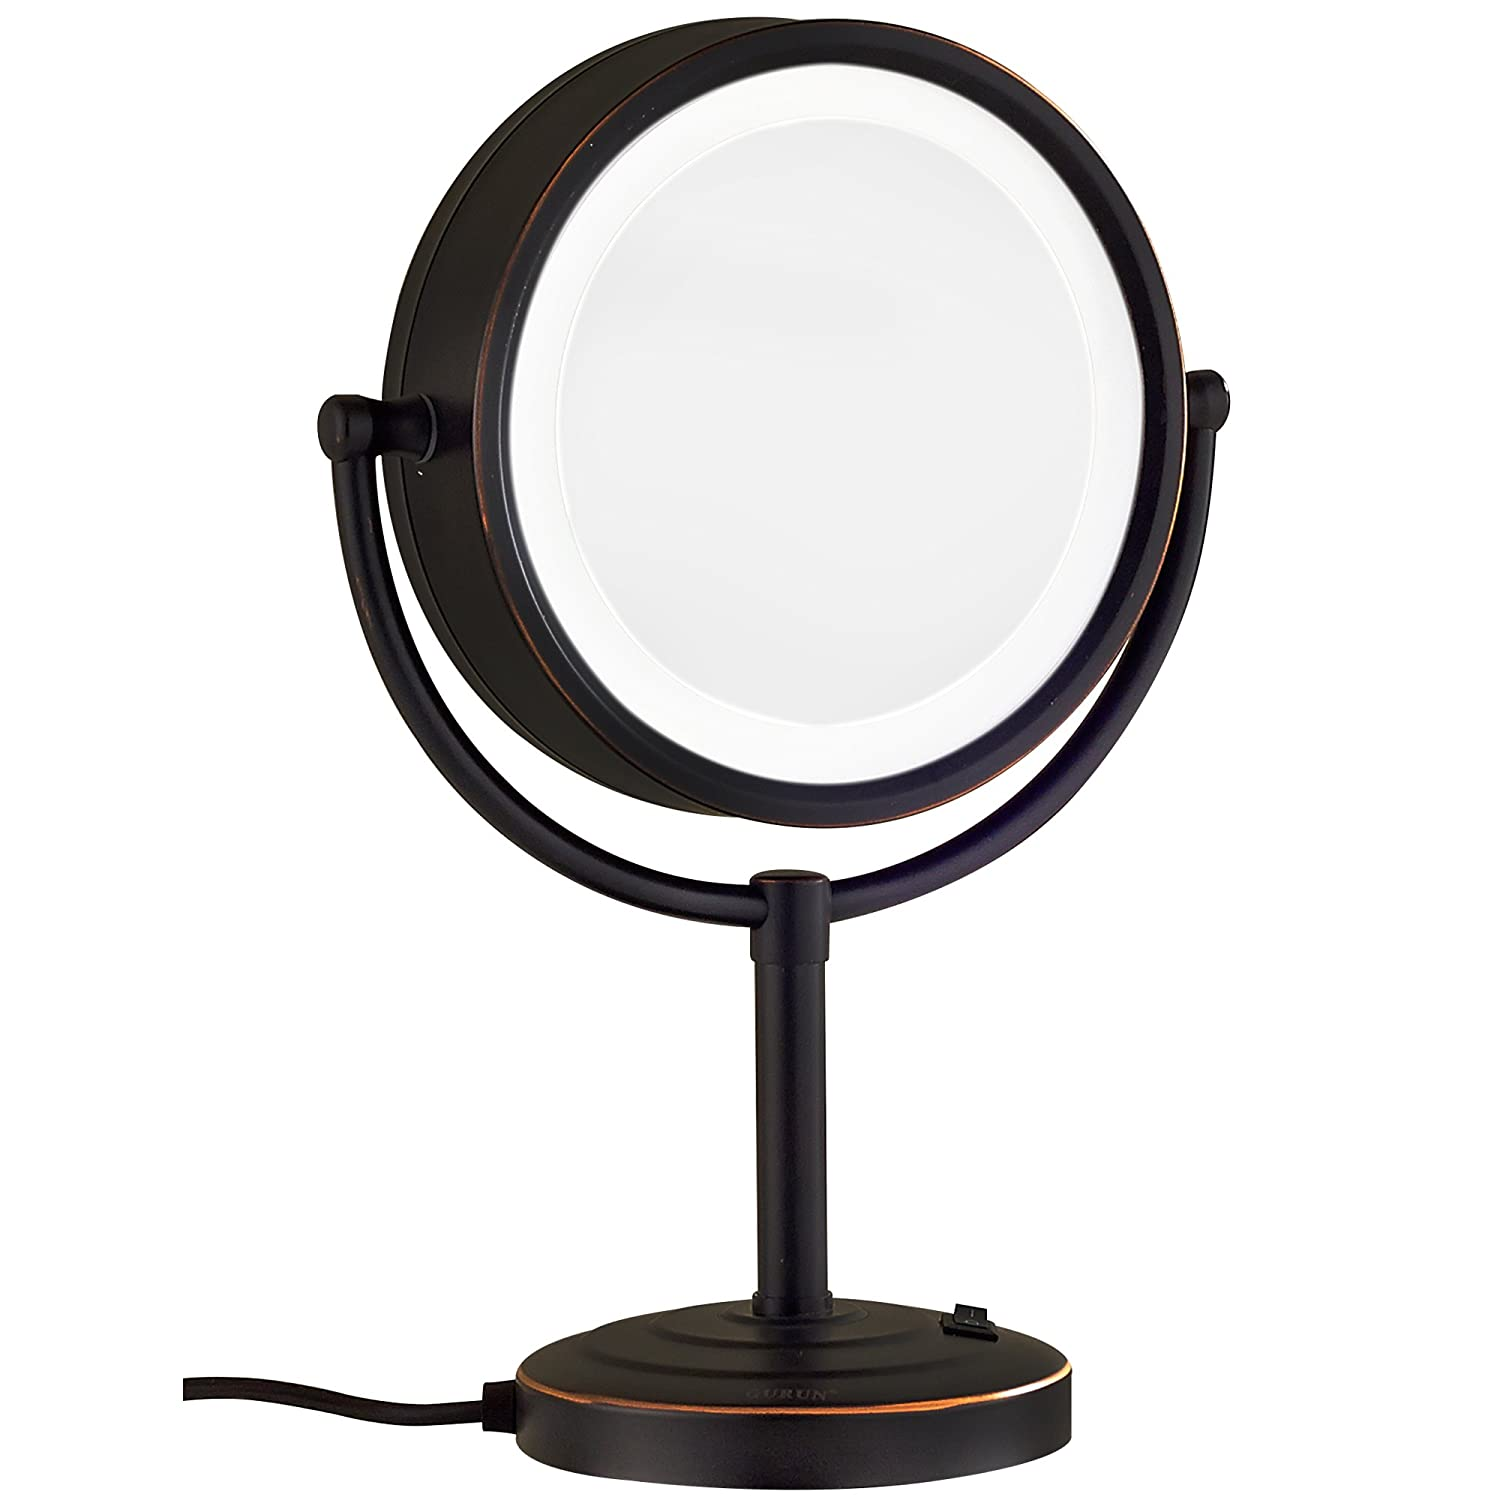 GURUN 8.5-Inch Tabletop Oil Rubbed Bronze Double-Sided LED Lighted Makeup Mirror with 7x Magnification, M2208DO 8.5in,7x